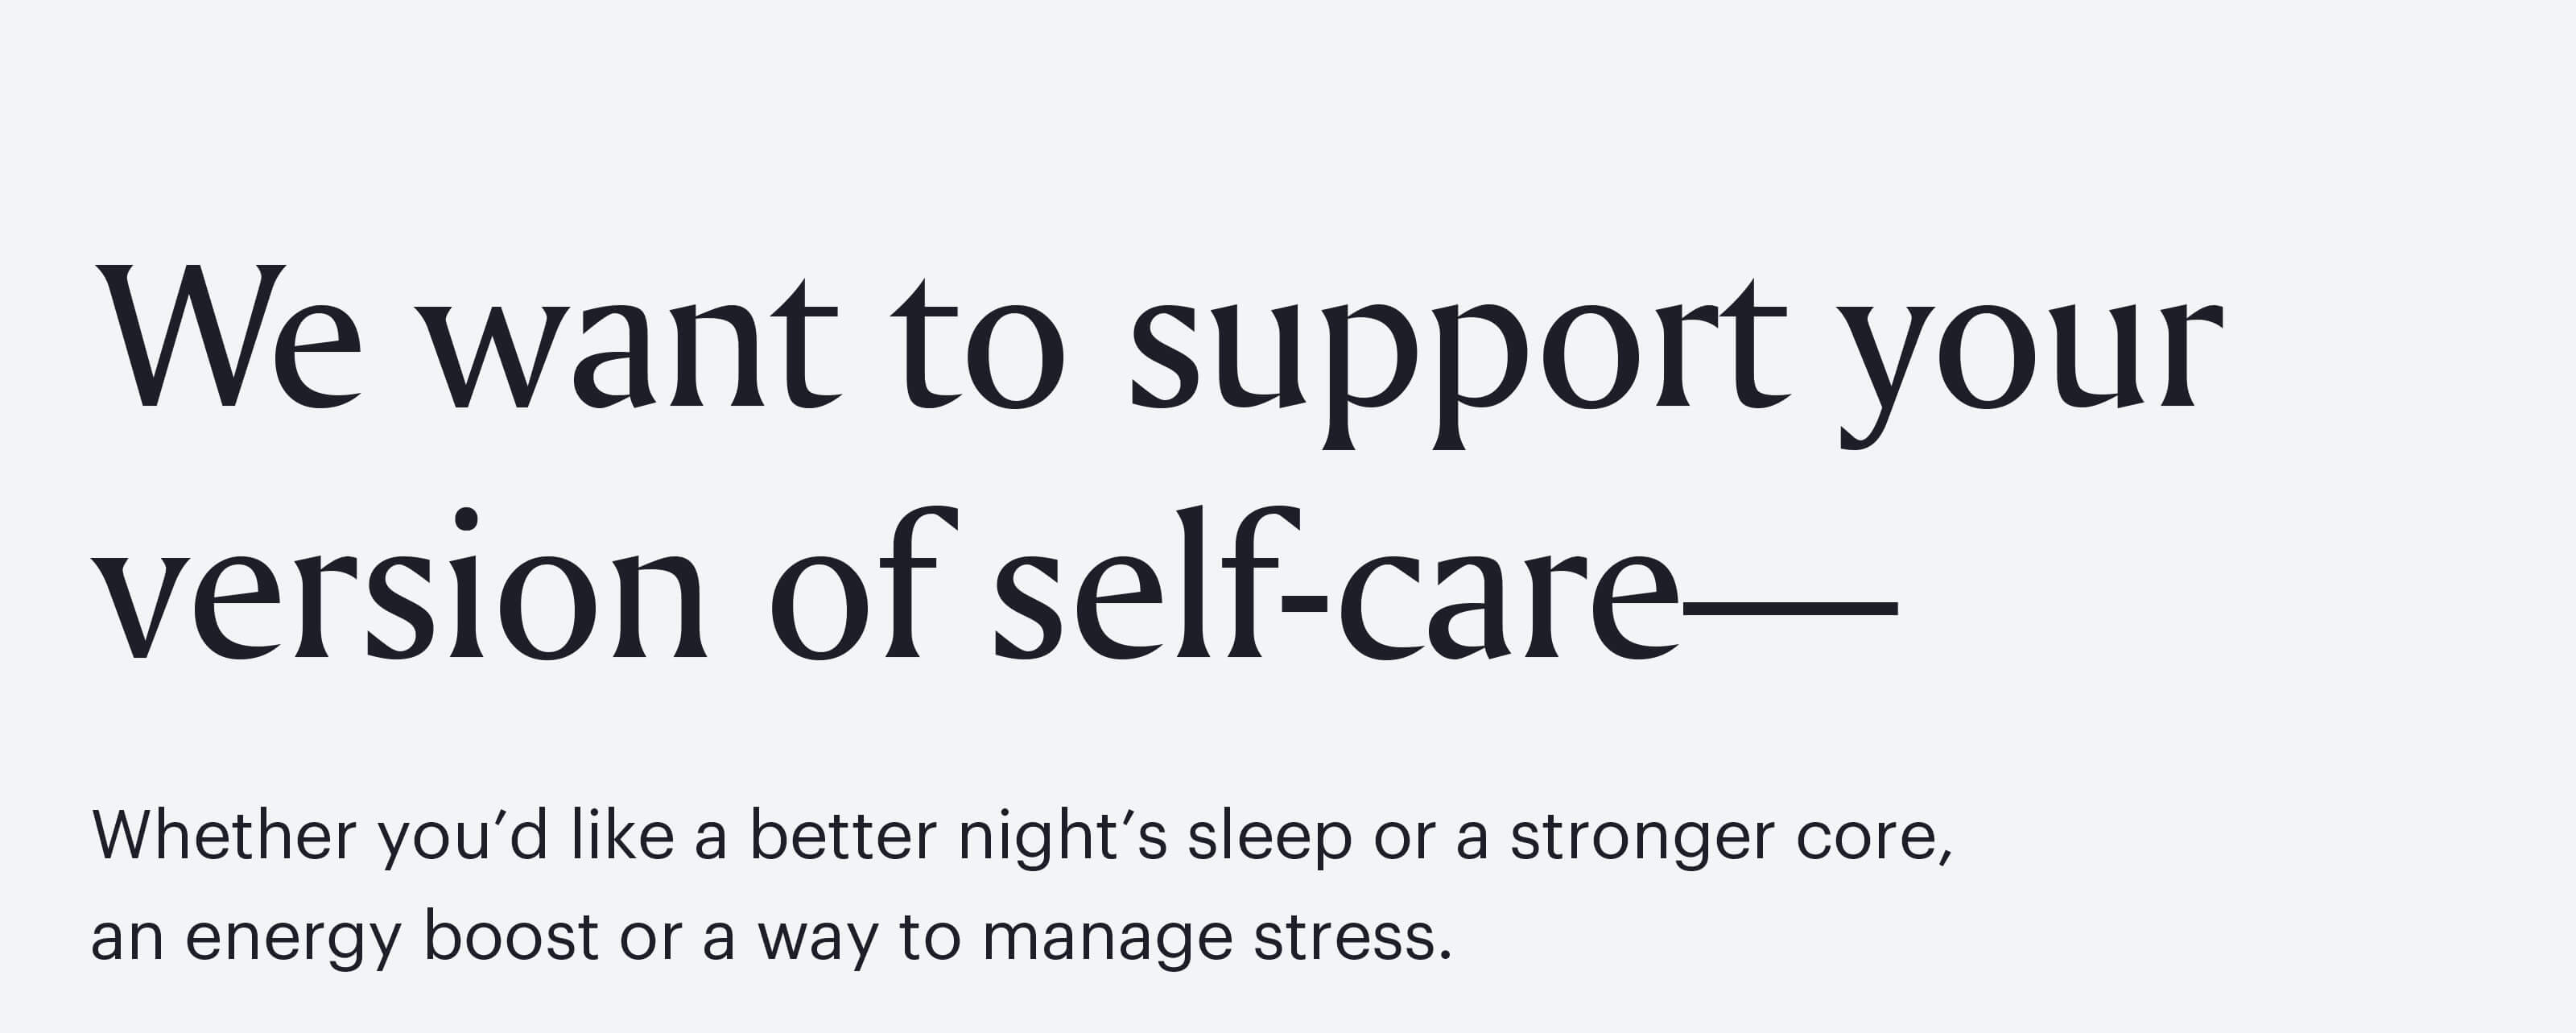 We want to support your version of self-care—whether you'd like a better night's sleep or a stronger core, an energy boost or a way to manage stress.